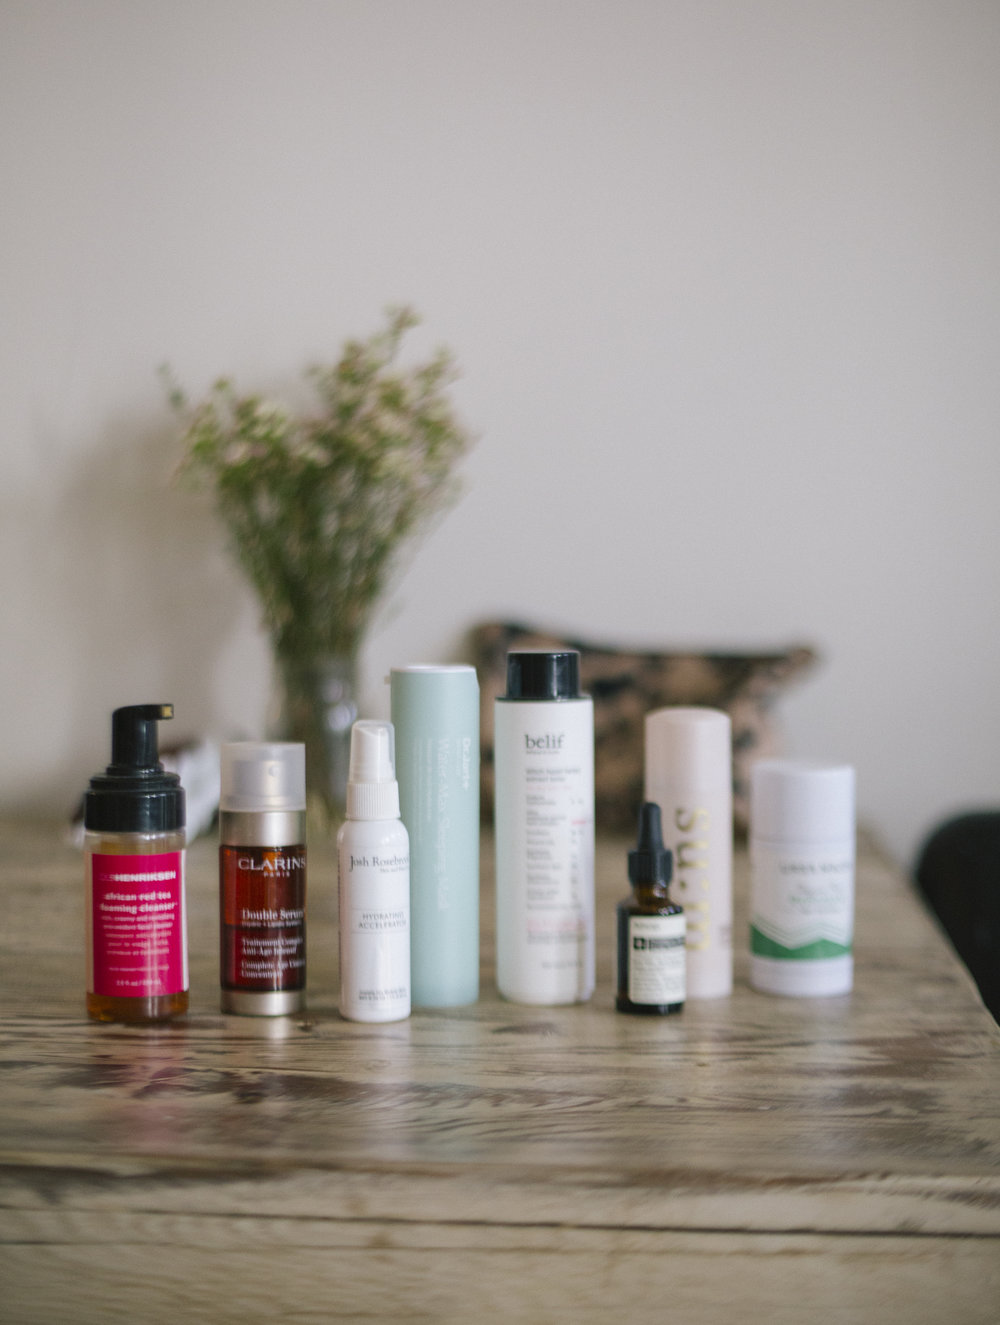 Some of Jeni's favorite beauty products